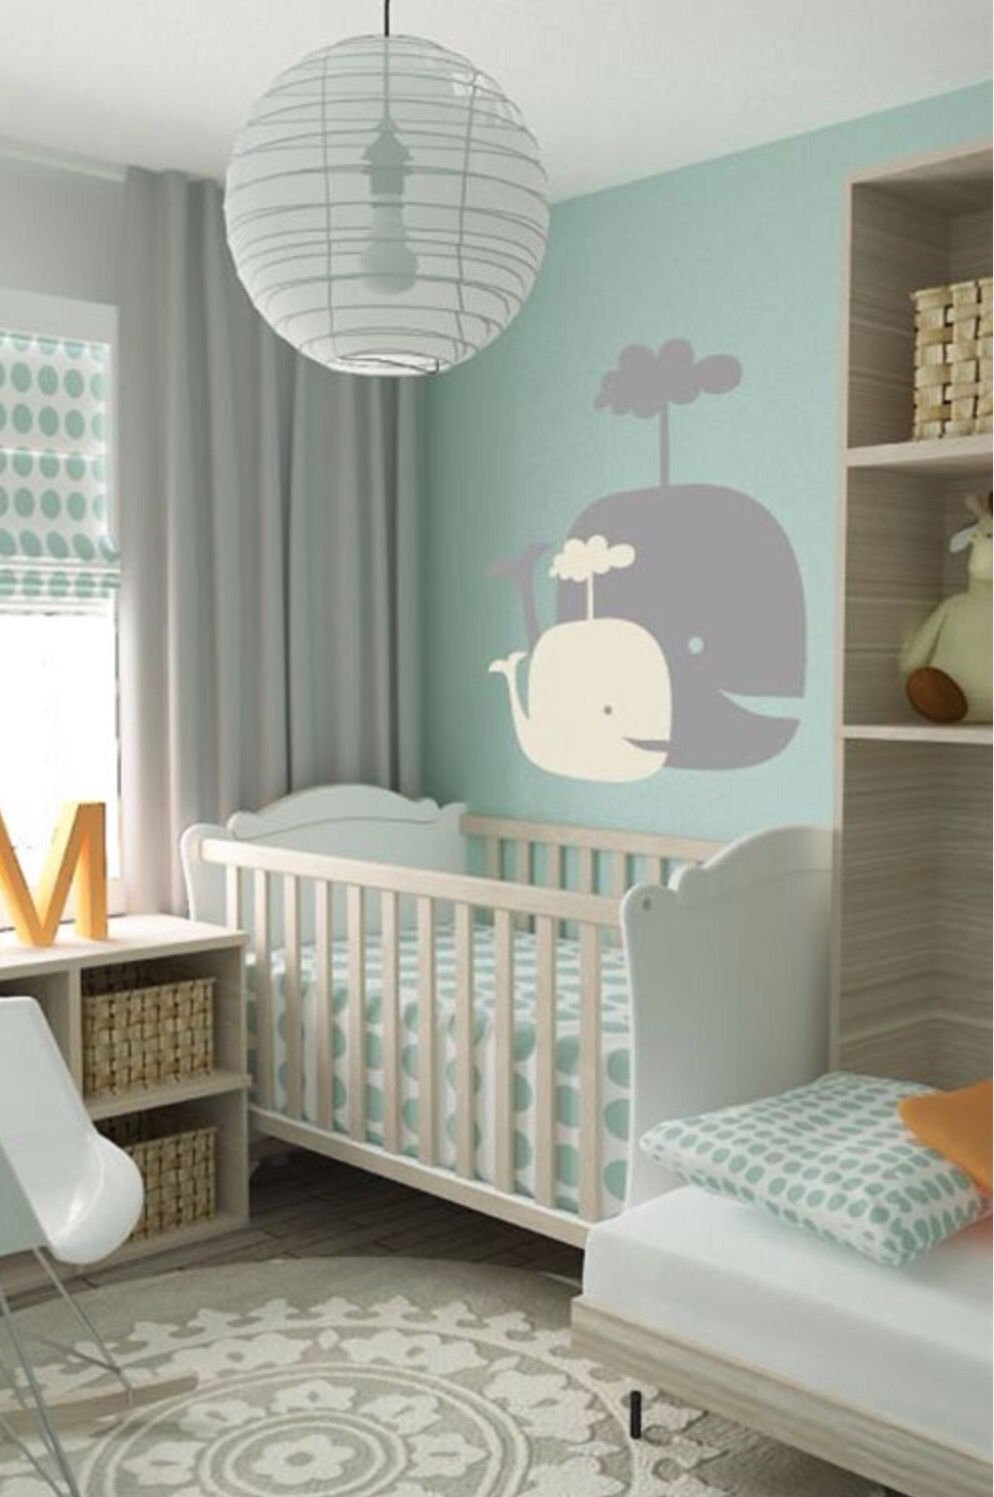 Baby Room Accessories: Baby Nursery Wall Decals, Baby